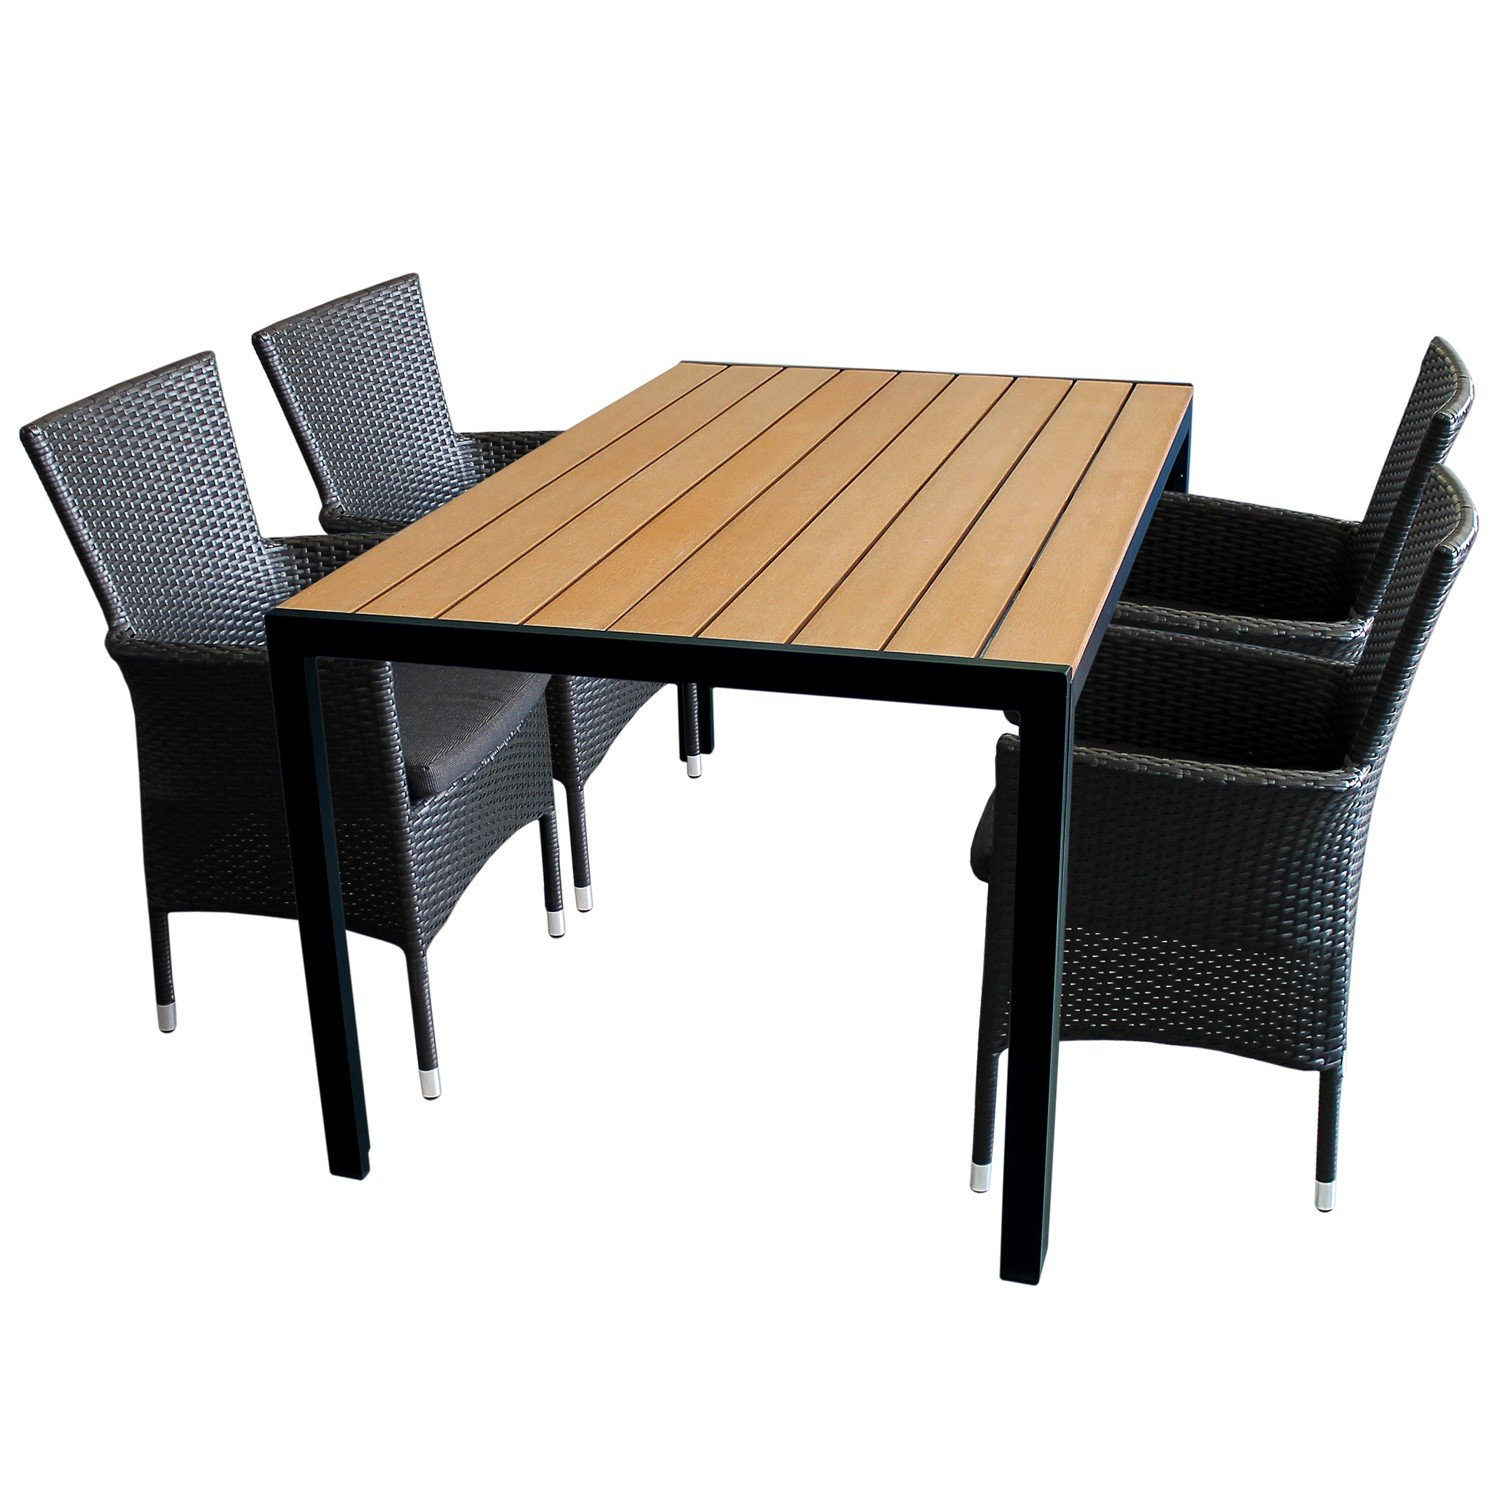 5tlg gartengarnitur gartenm bel set aluminium polywood non wood tisch 150x90cm 4x poly rattan. Black Bedroom Furniture Sets. Home Design Ideas